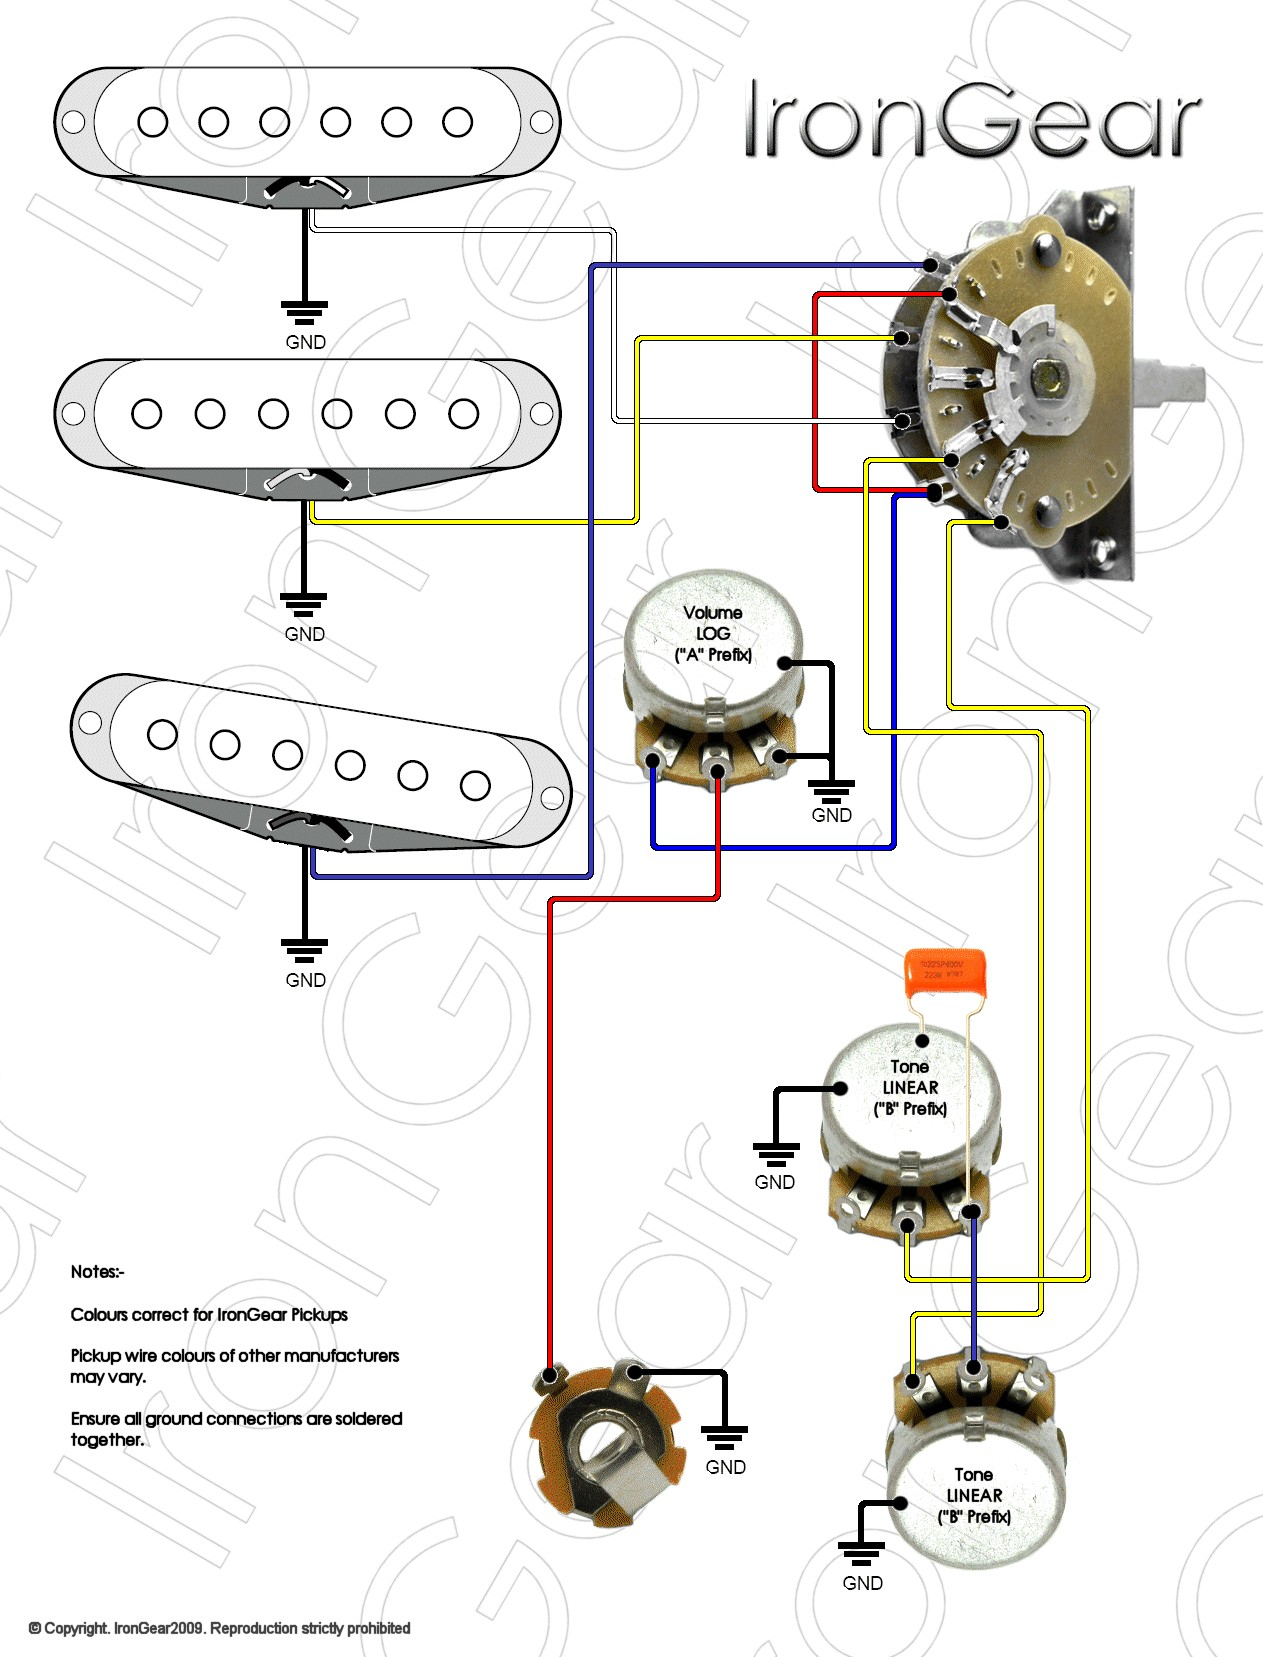 stratocaster wiring diagram 5 way switch Collection-Les Paul Switch Wiring Diagram Best Guitar Parts From Axetec 5 Position Lever Switches 14-g